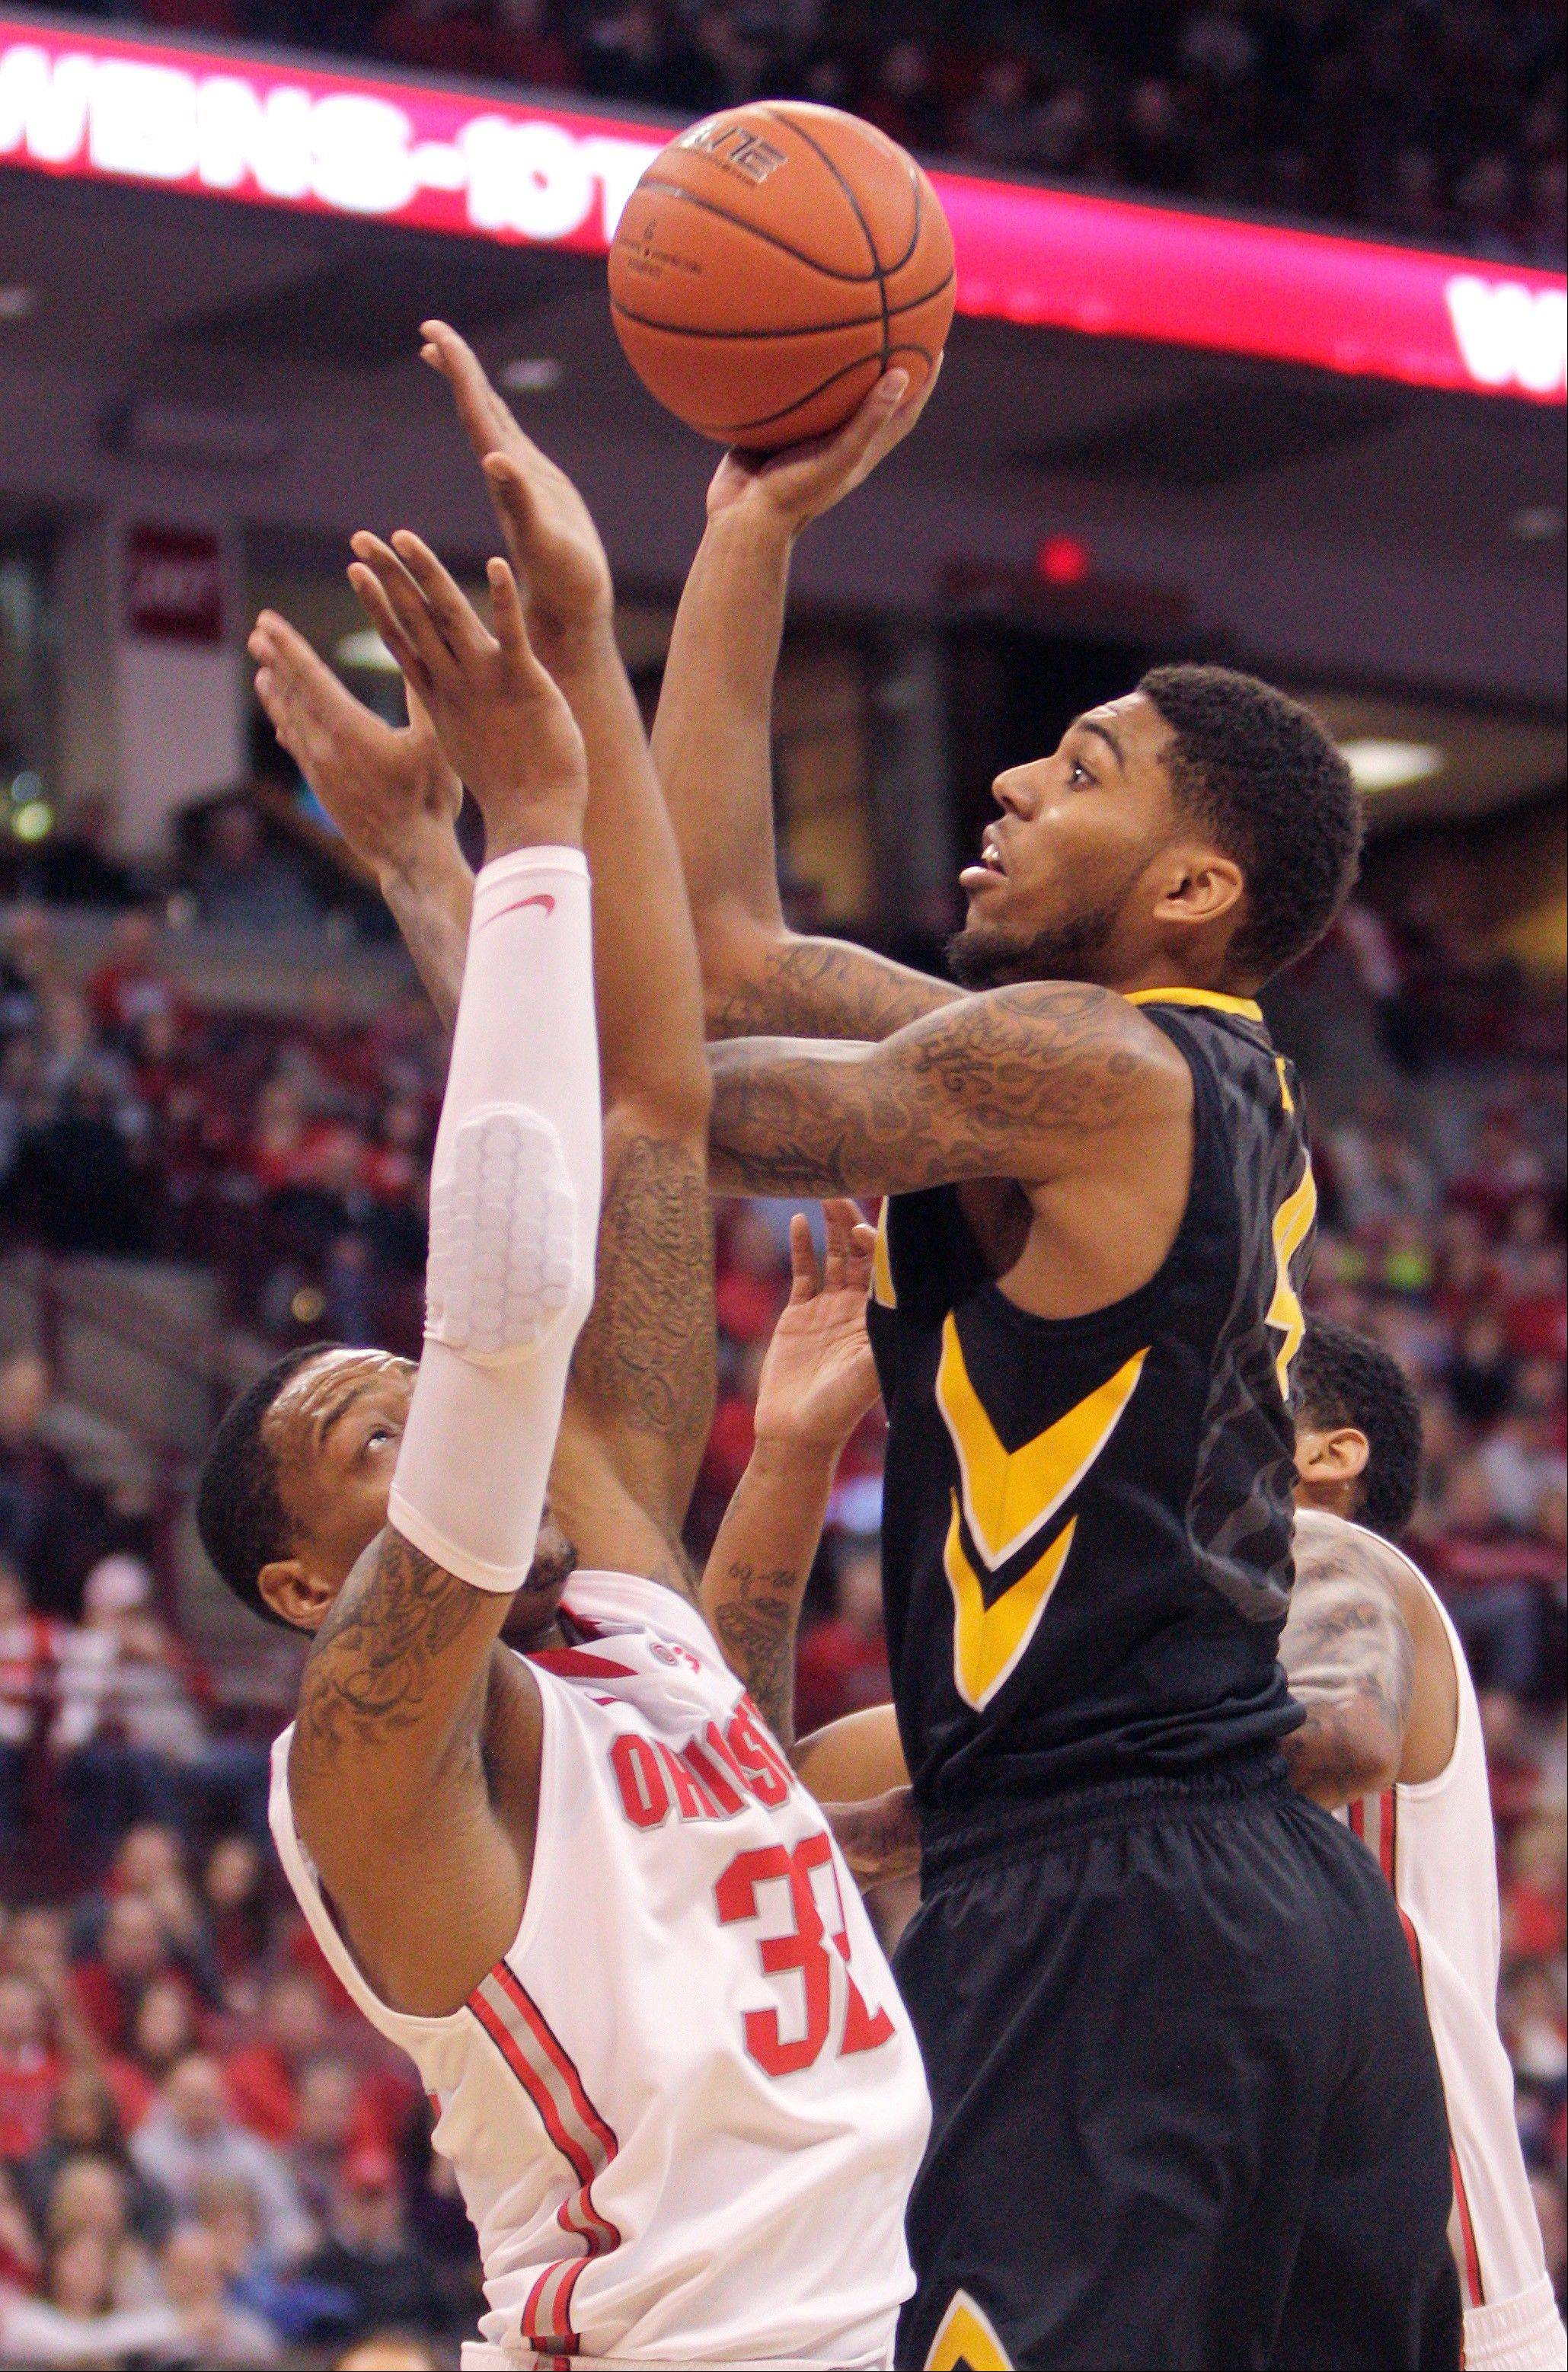 Iowa�s Roy Devyn Marble, right, shoots over Ohio State�s Lenzelle Smith during the first half of Sunday�s game in Columbus, Ohio.